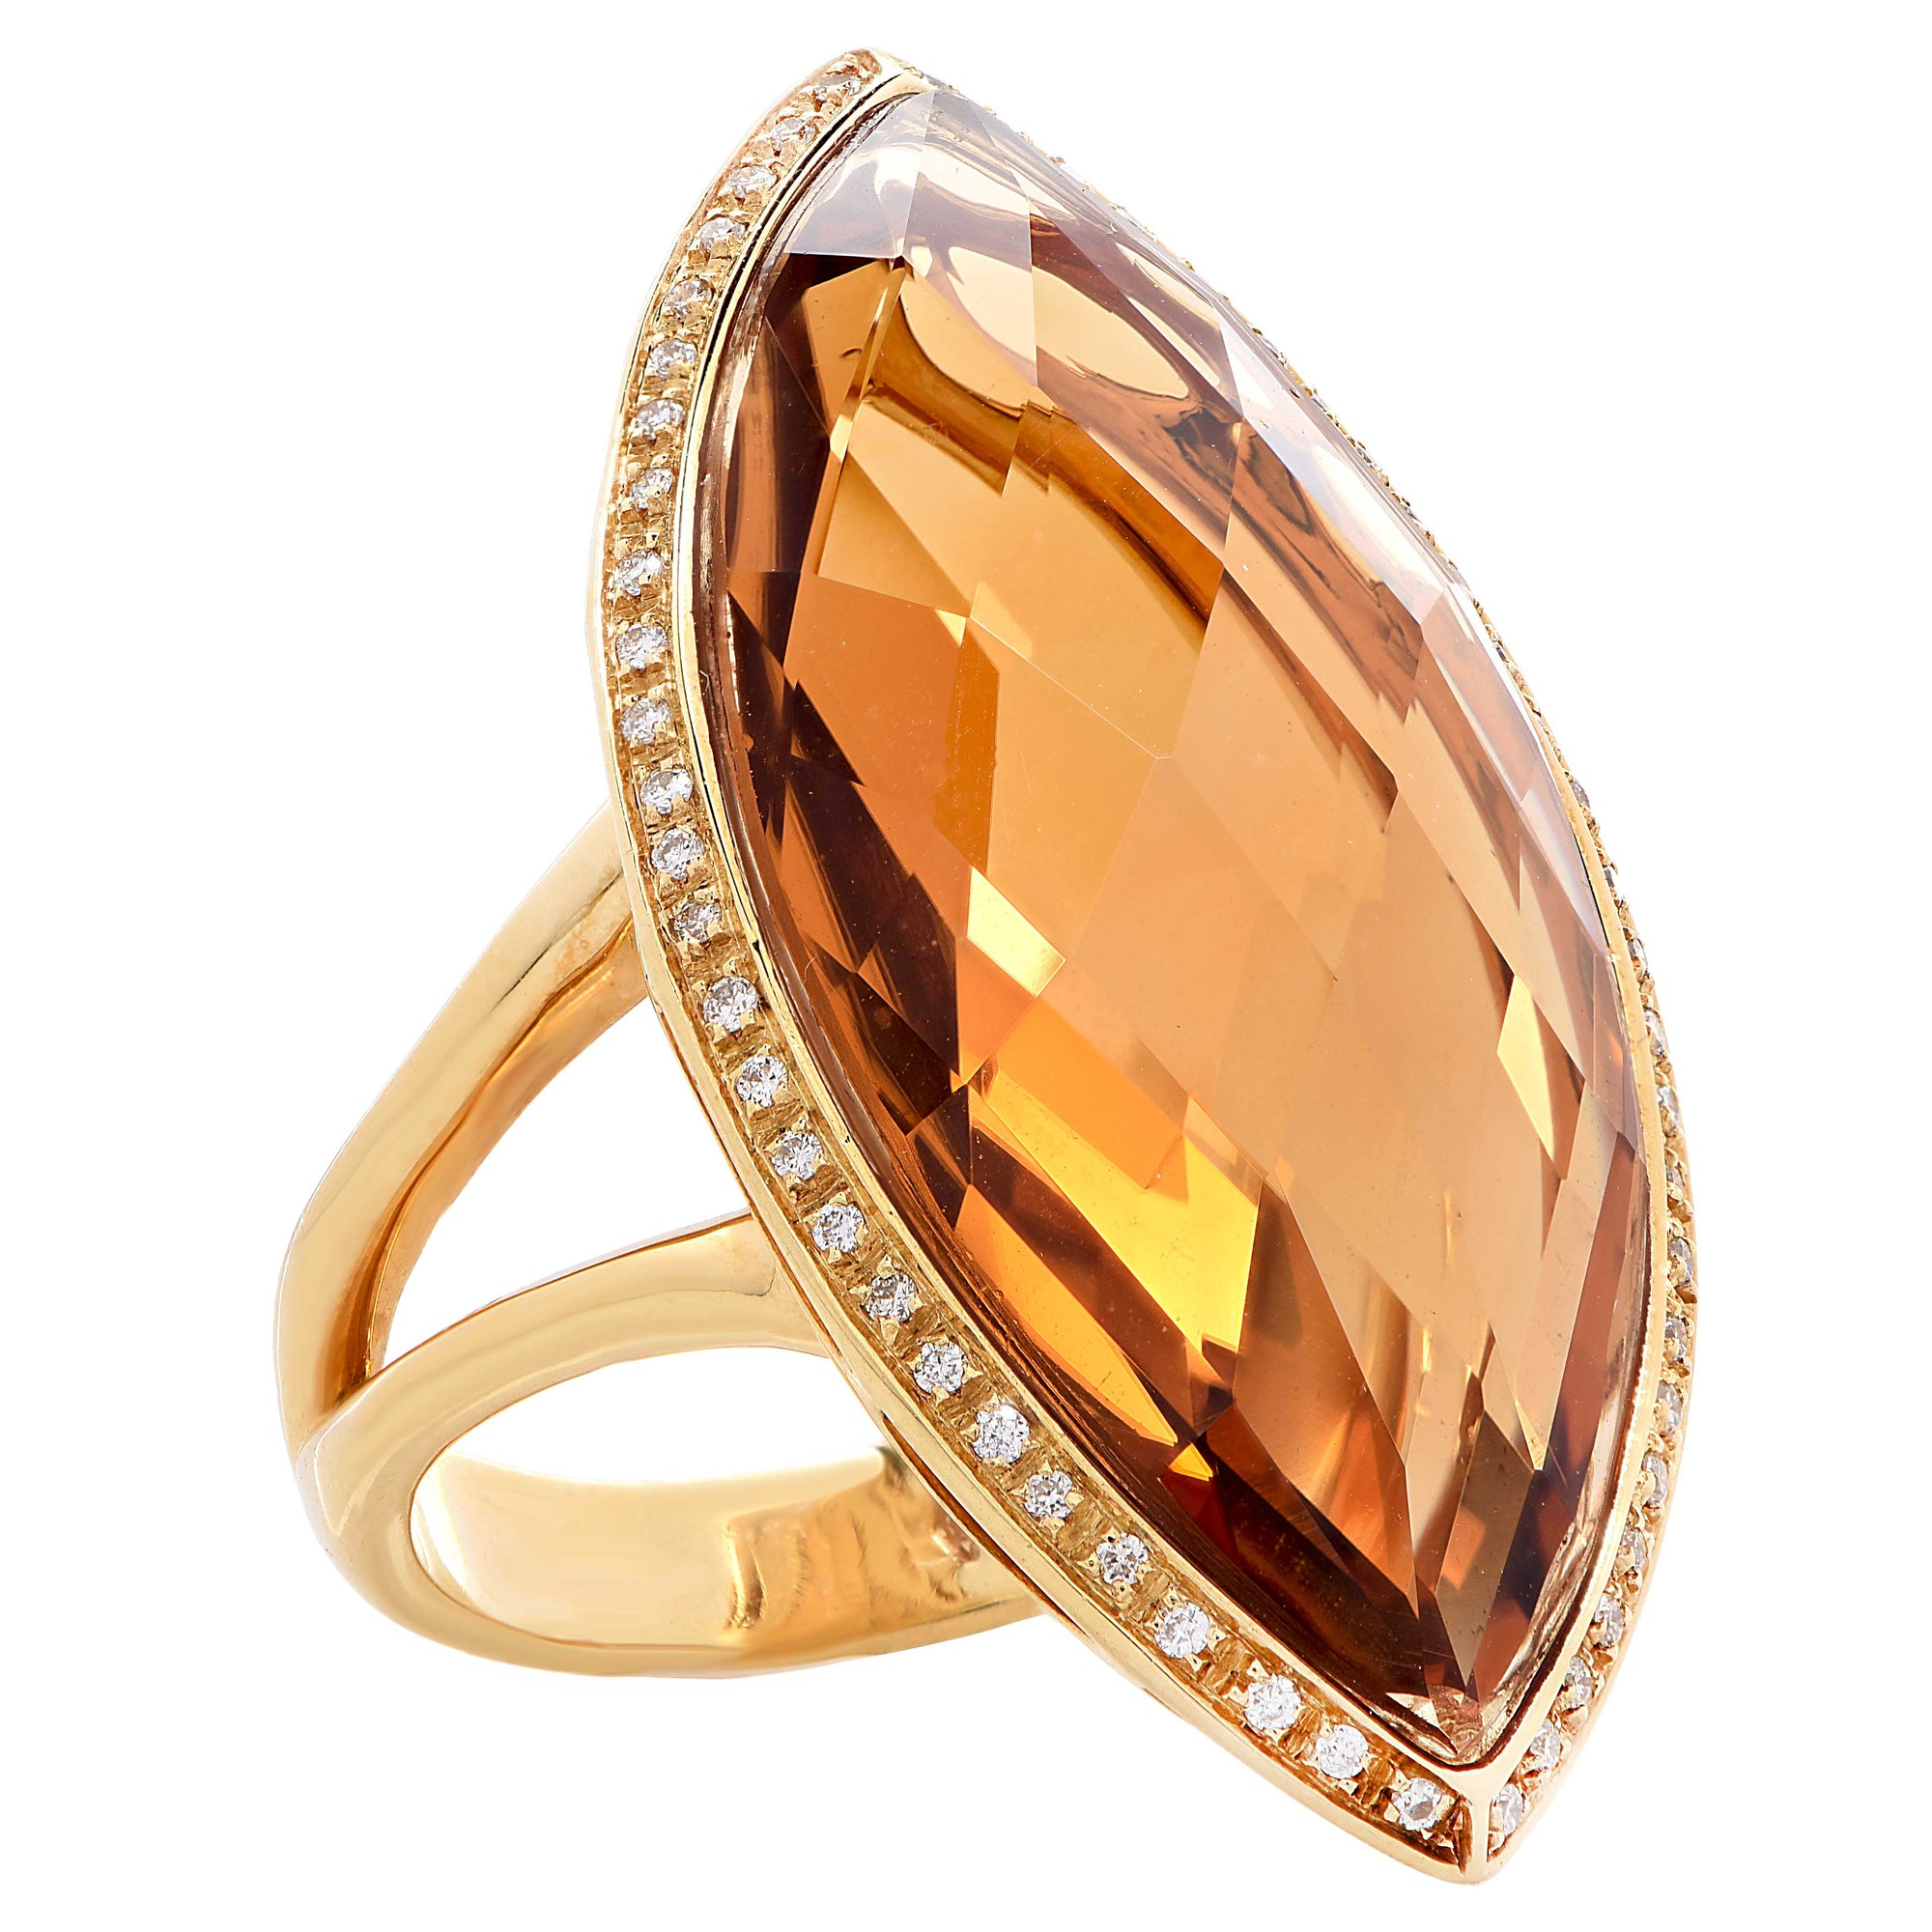 23 Carat Natural Citrine Diamond Yellow Gold Ring